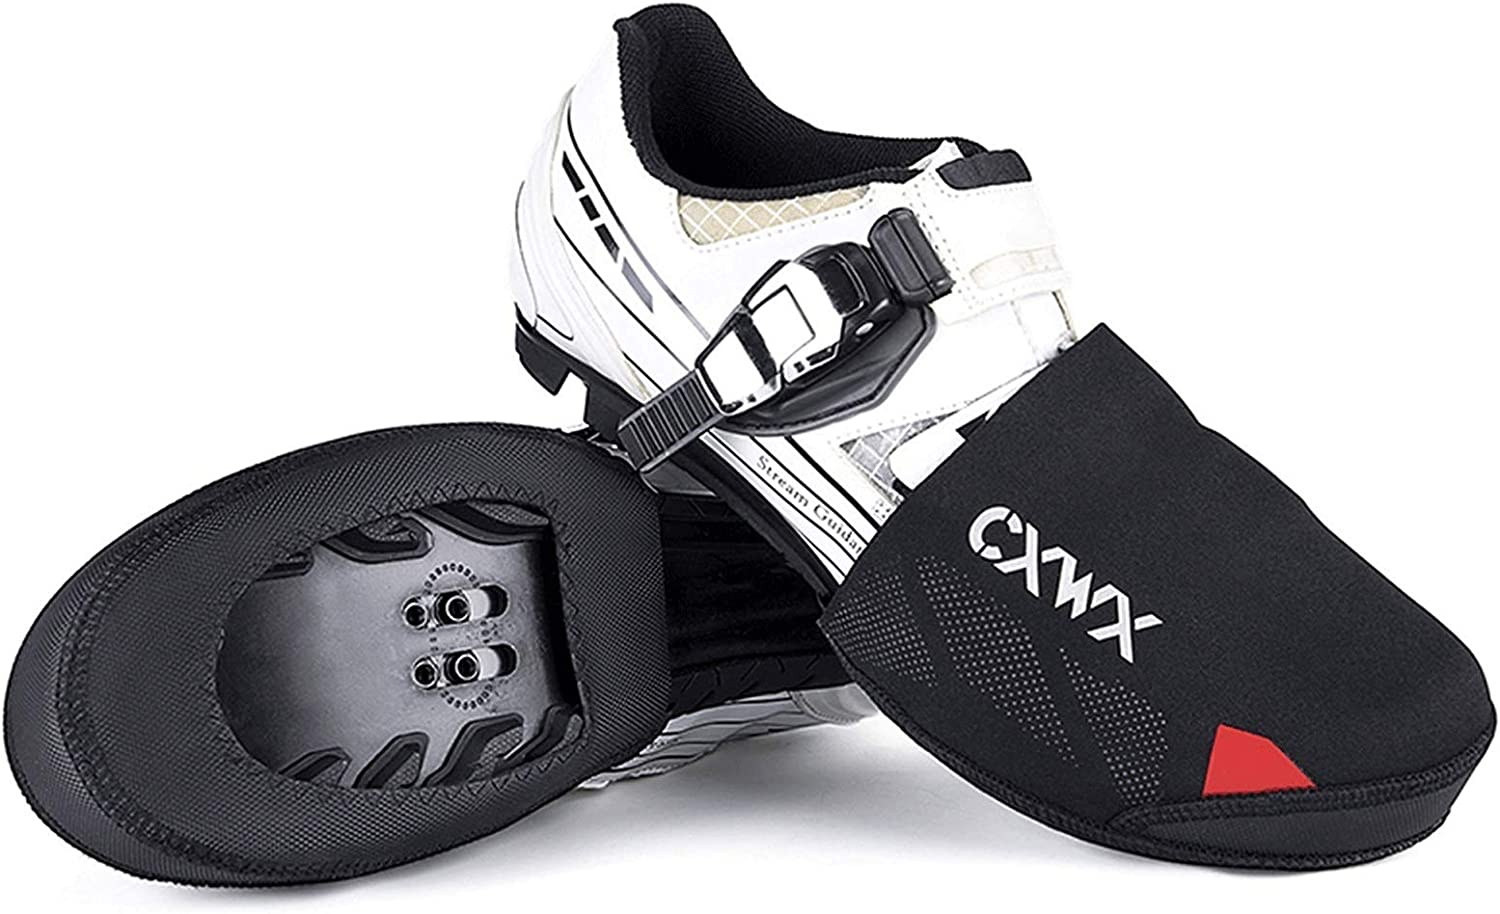 ZMJ Cycling Shoe Covers Waterproof Windproof OFFicial store Bicycle Toe Oklahoma City Mall